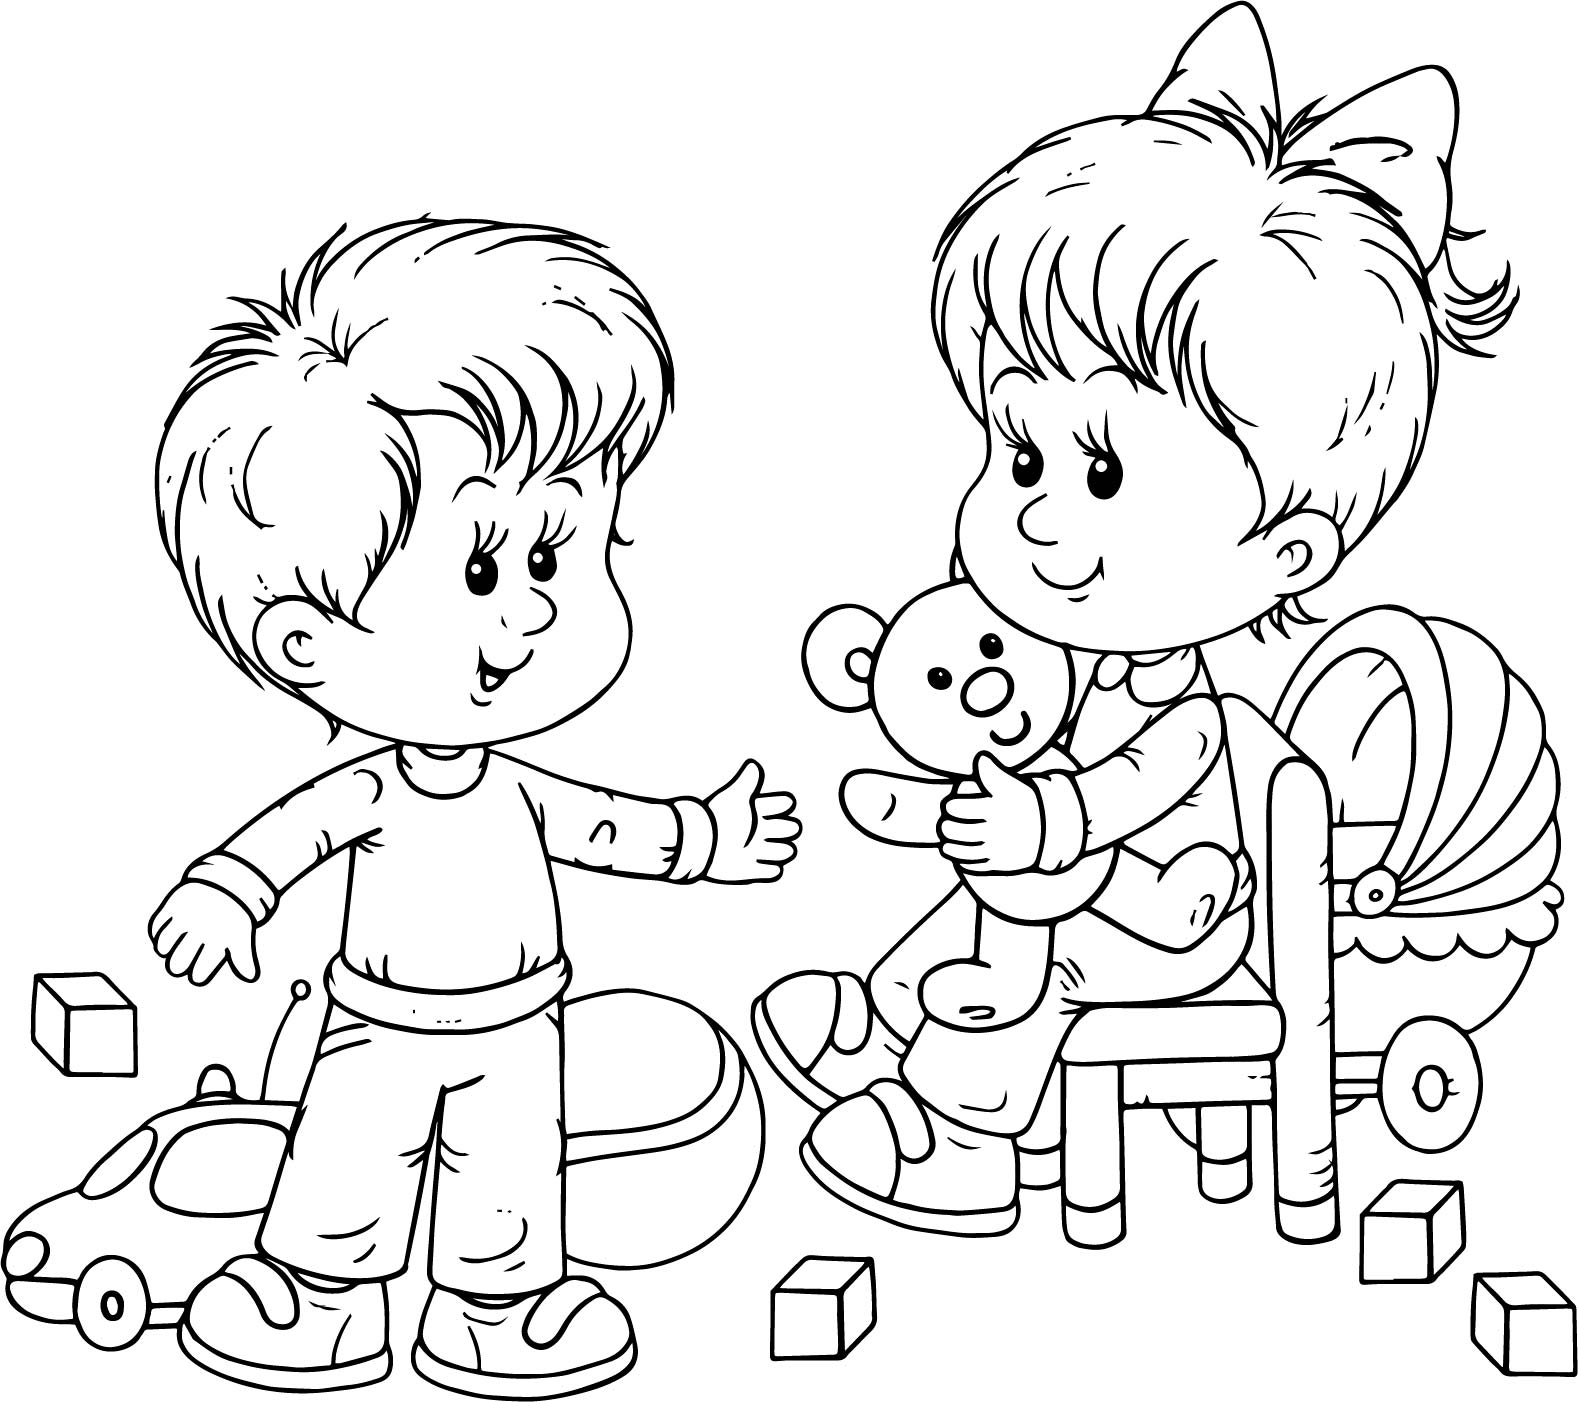 Baby Bugs Bunny Girl And Boy Coloring Page Wecoloringpage Coloring